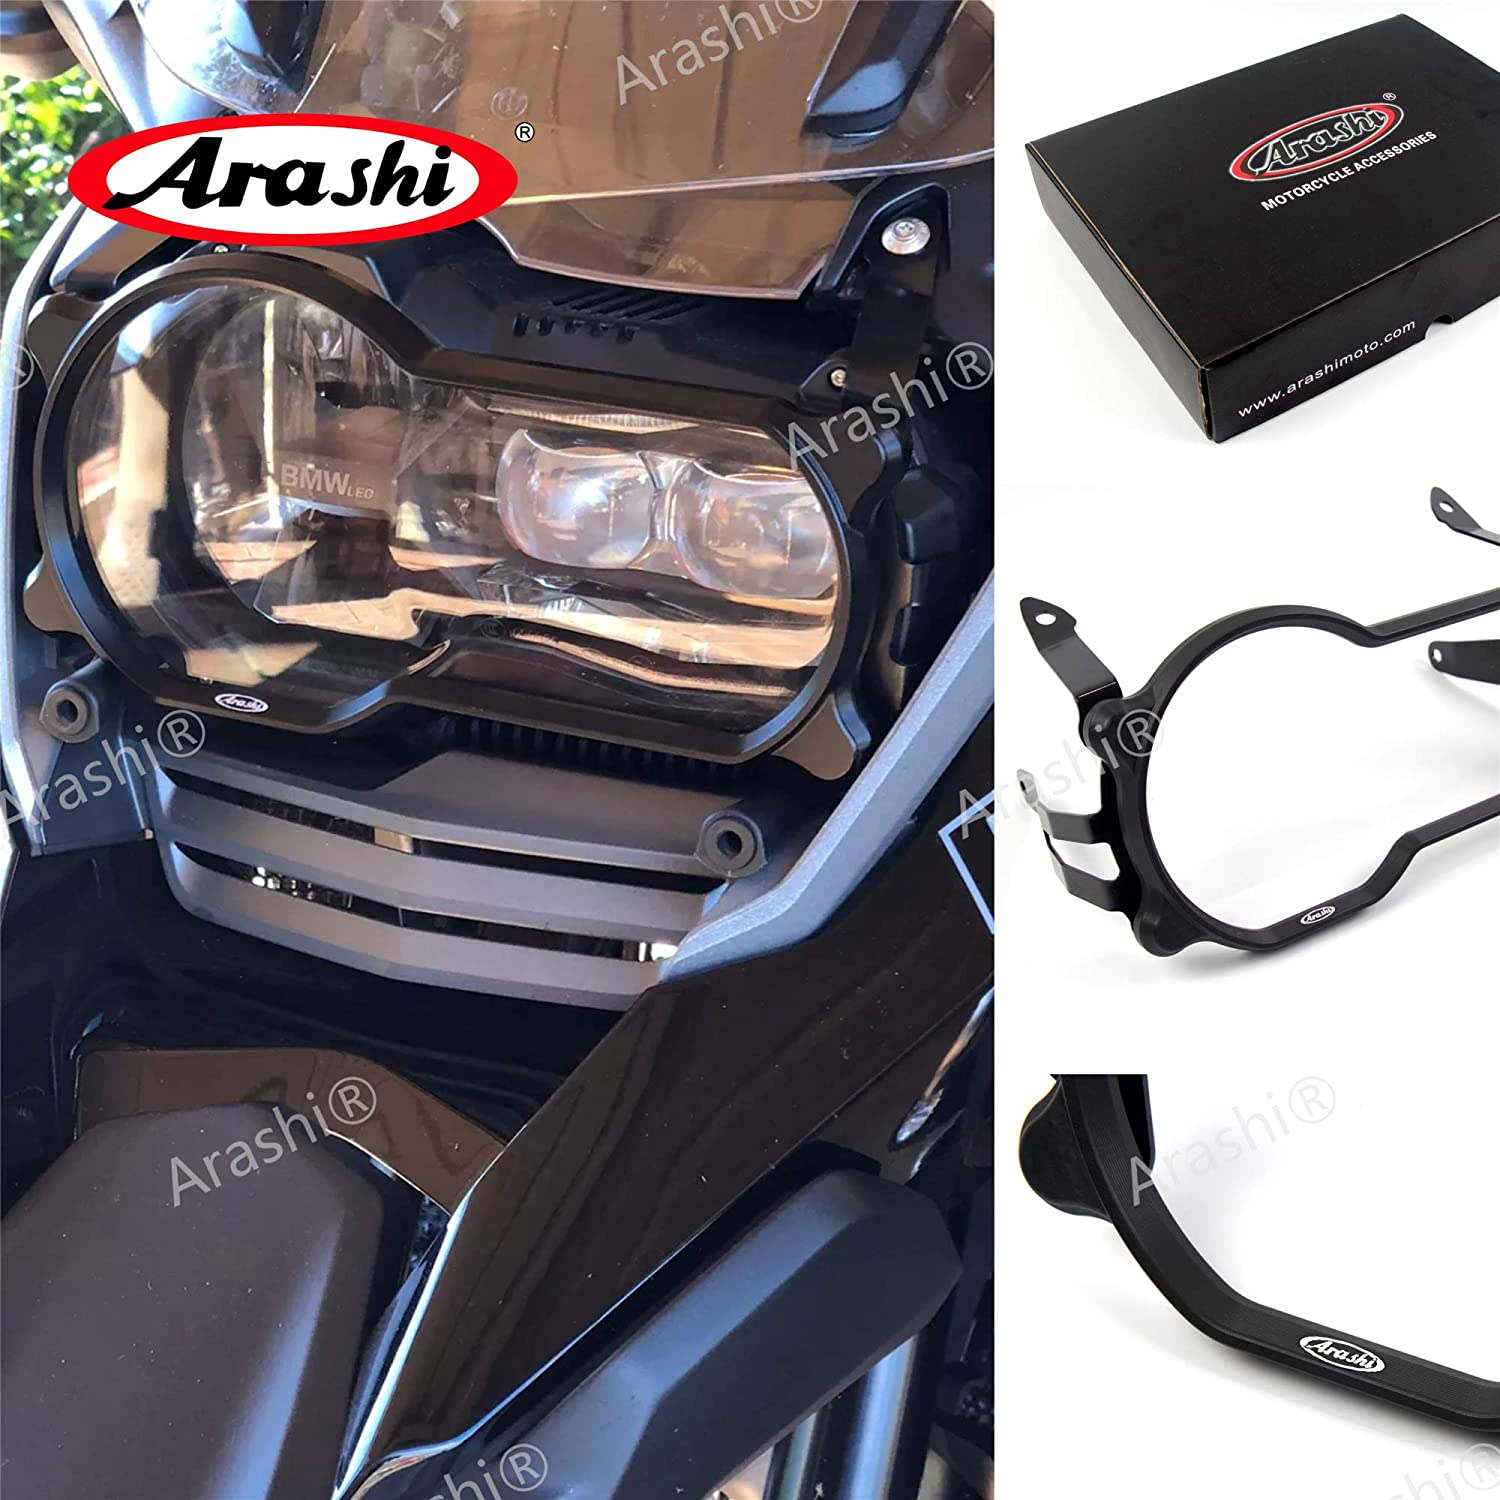 Arashi Headlight Protector Guard Cover for BMW R1200GS 2013-2018 LC 2013-2016 ADV ADVENTURE 2013-2018 Motorcycle Accessories Black